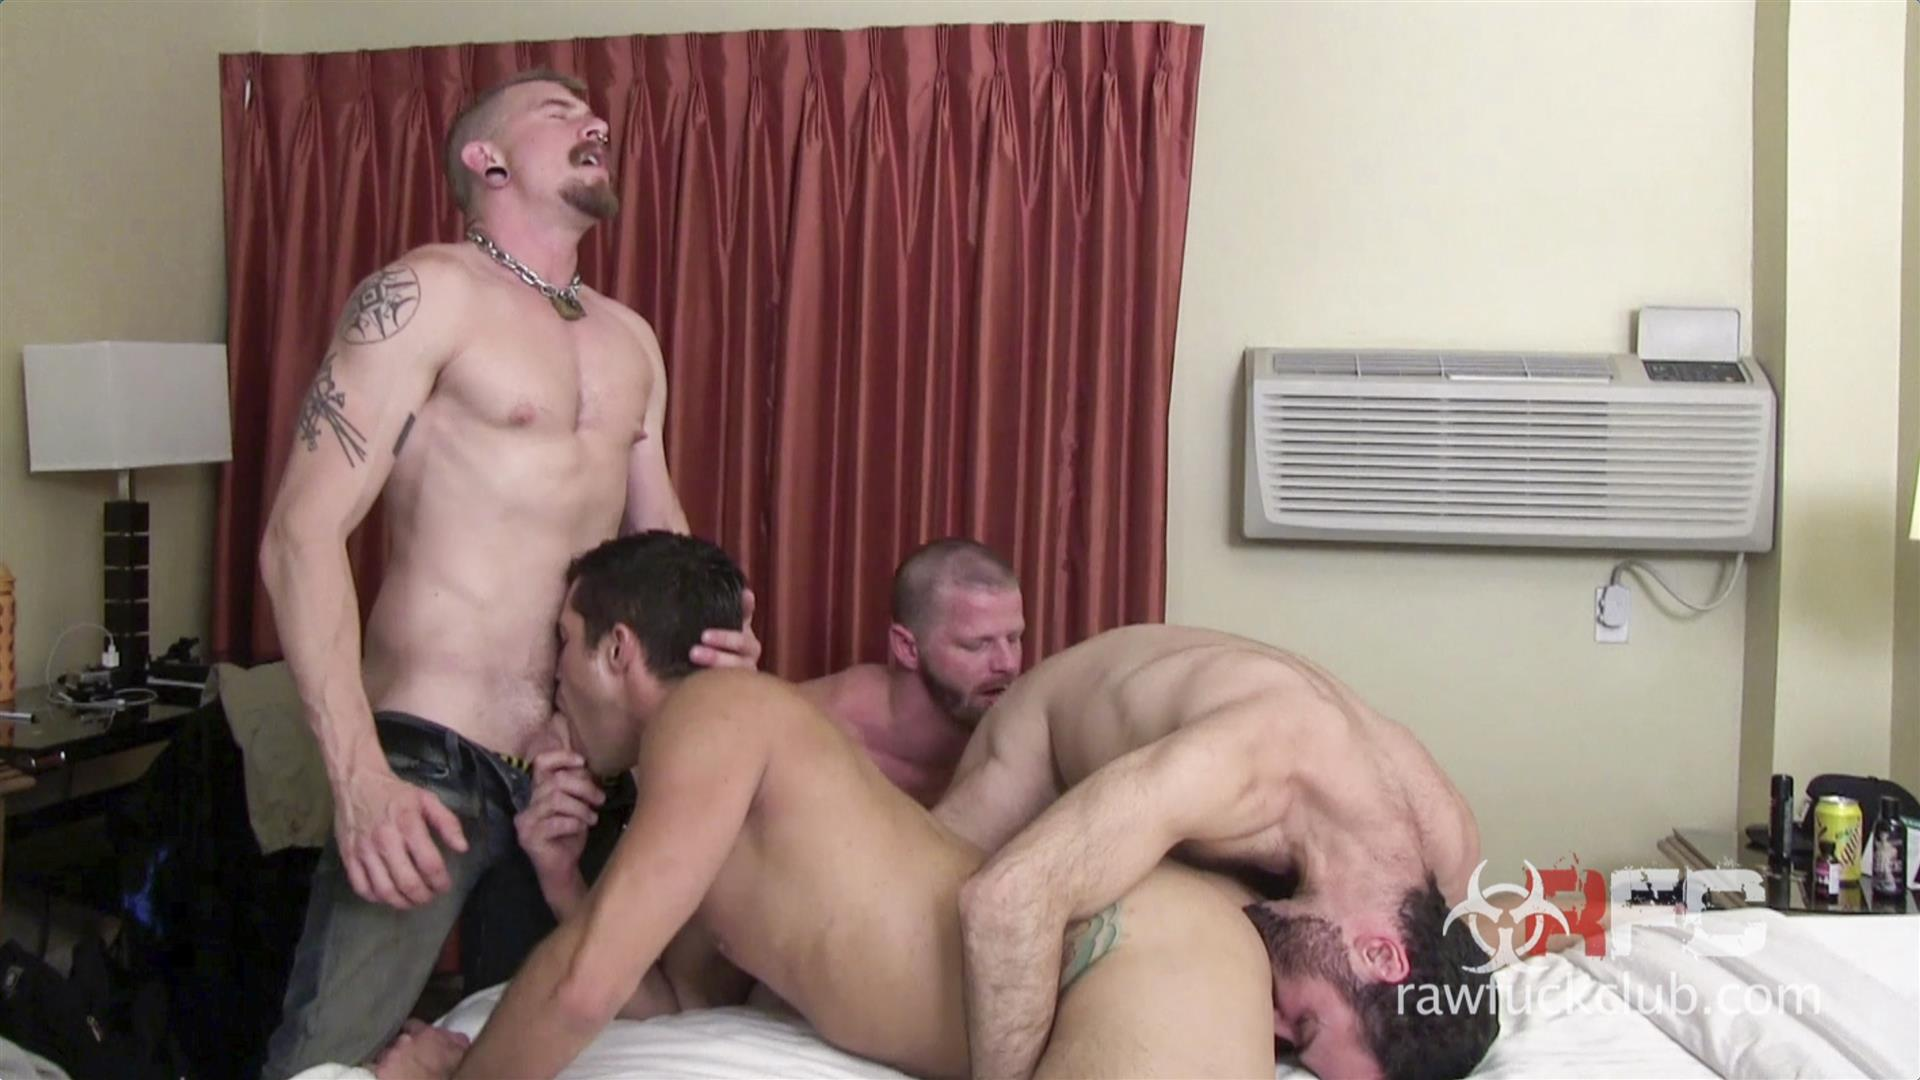 Raw Fuck Club Dylan Saunders and Dusty Williams and Jeff Kendall and Jeremy Stevens BBBH Amateur Gay Porn 05 Big Cock Amateur Hotel Bareback Sex Party